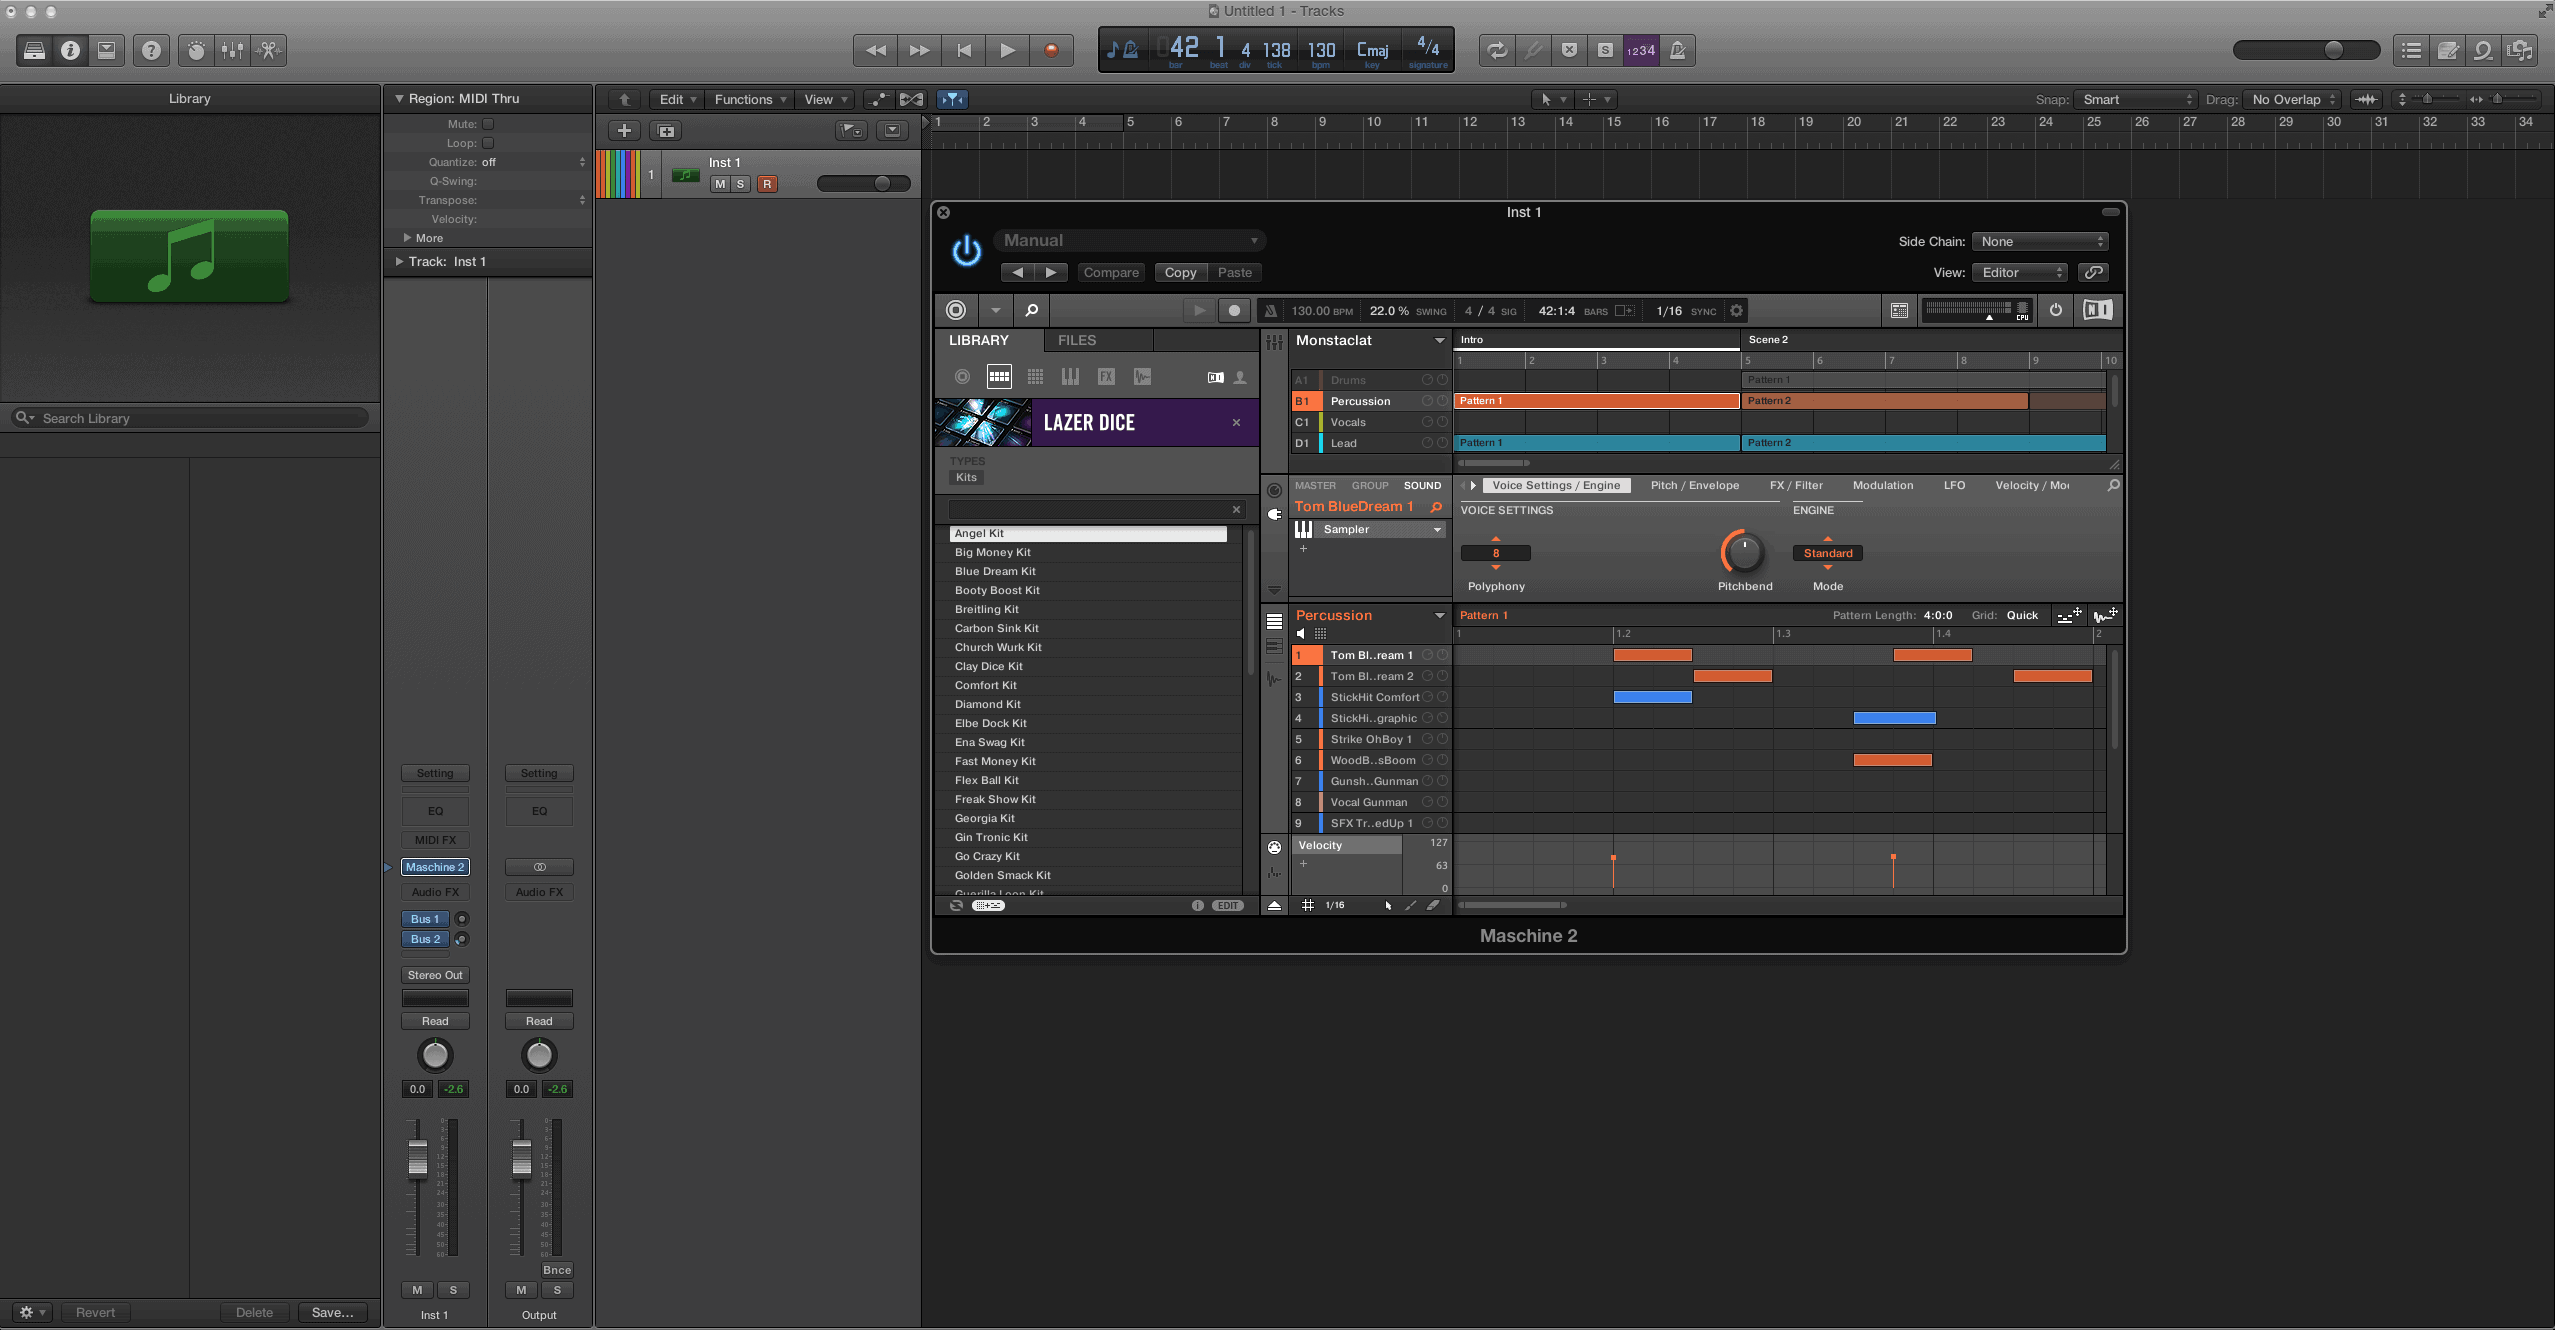 Maschine 2 into Logic Pro X for Mixing